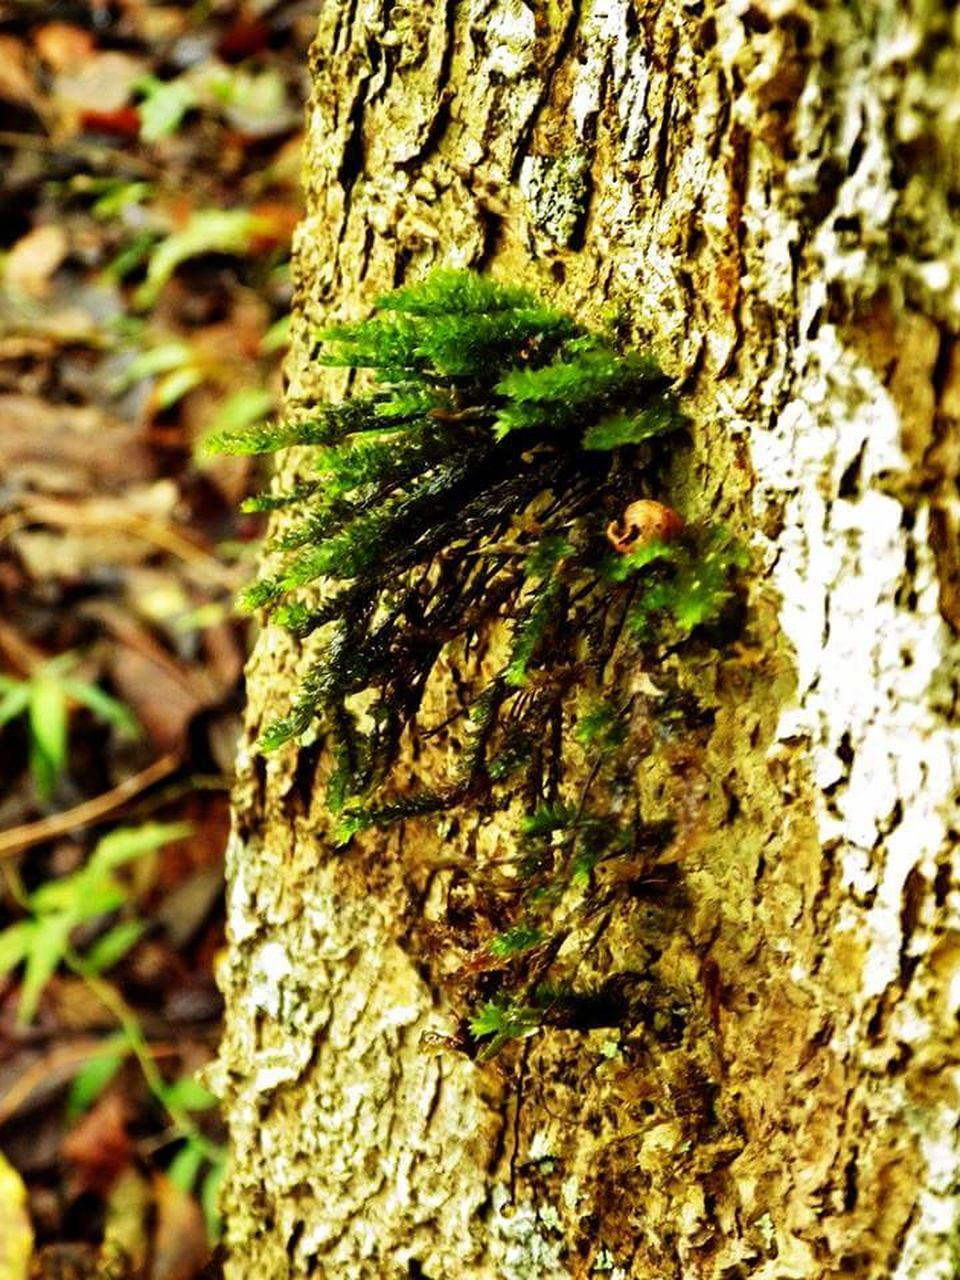 tree trunk, tree, textured, close-up, day, bark, nature, animal themes, rough, animals in the wild, no people, focus on foreground, outdoors, wood - material, one animal, animal wildlife, growth, fungus